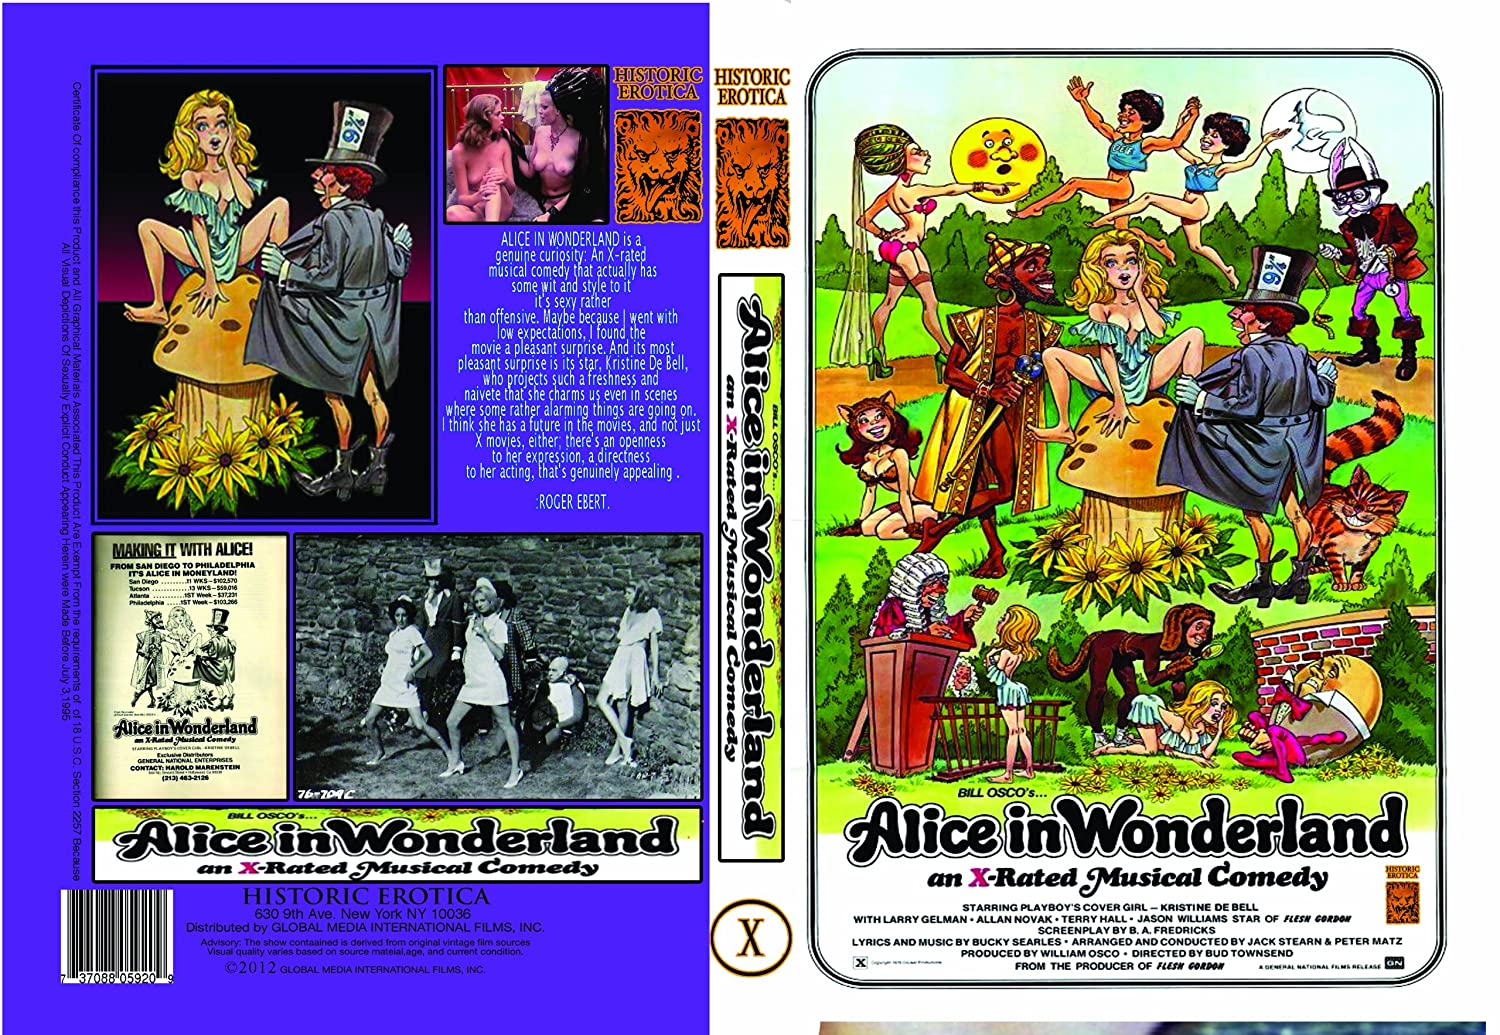 Alice in wonderland porn movie pic 66